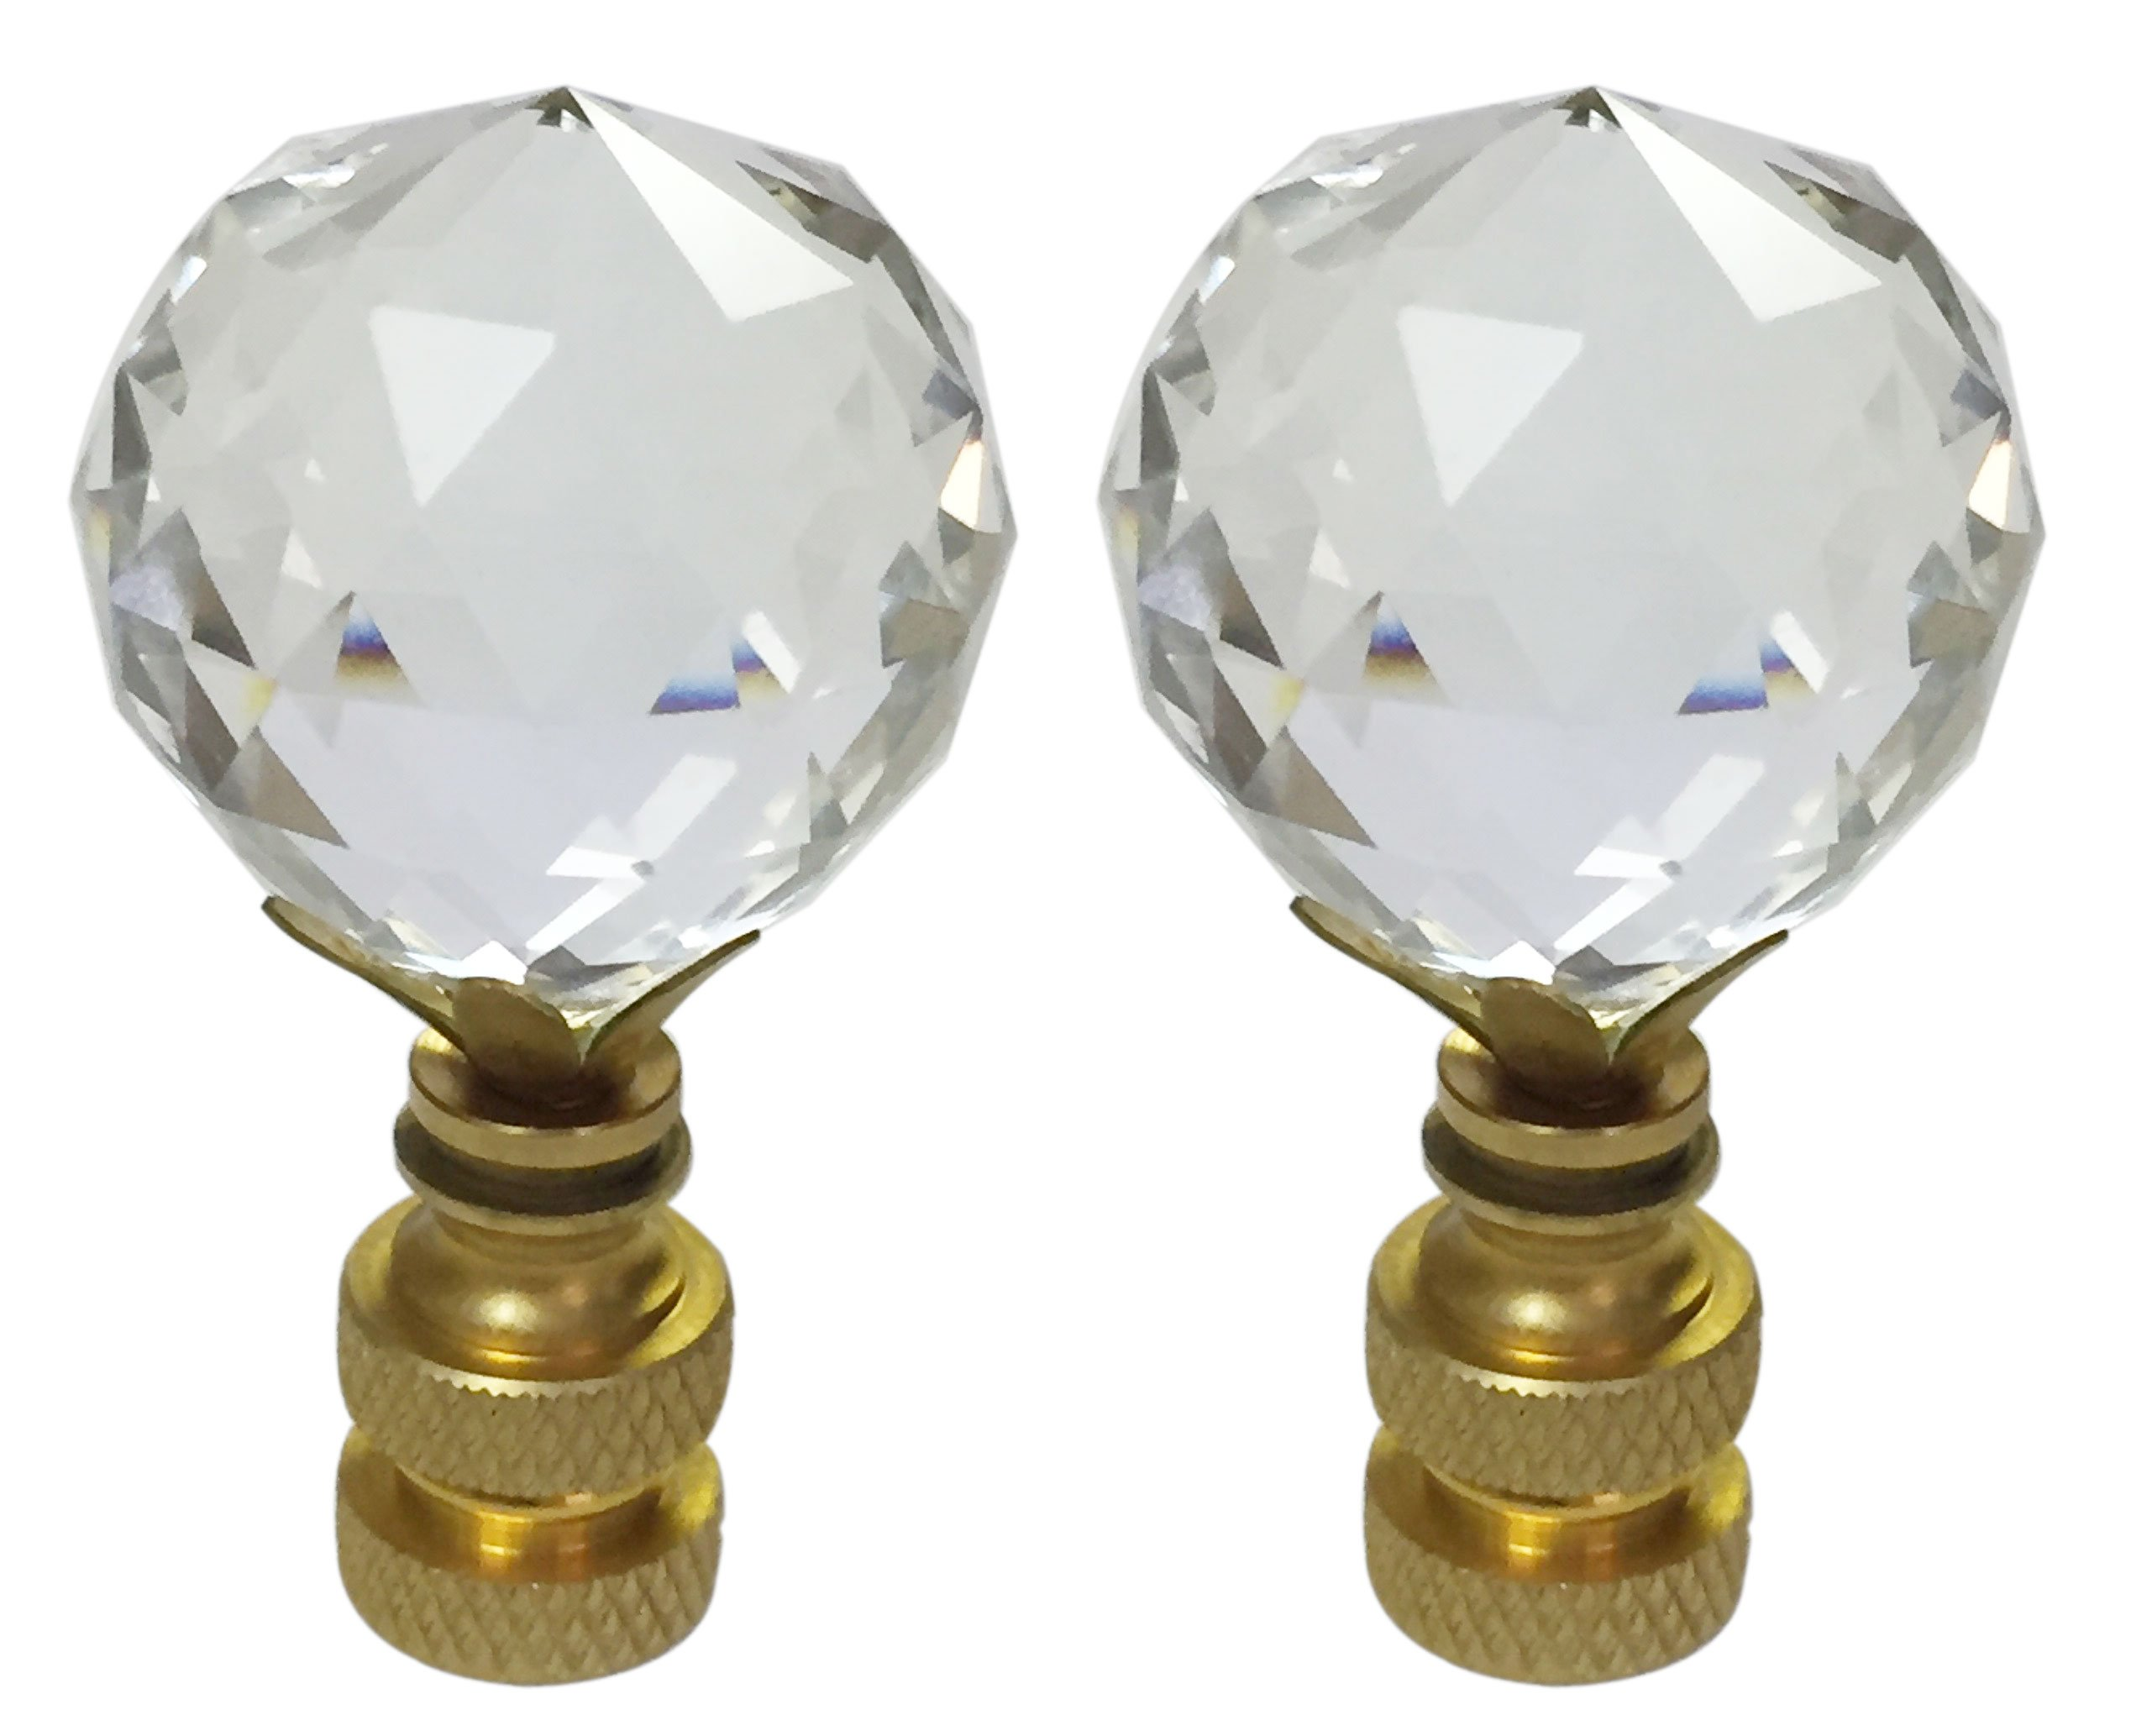 Royal Designs CCF2505L-PB-2 Large Faceted Diamond Cut Clear K9 Crystal Finial for Lamp Shade with Polished Brass Base, Set of 2, 2 Piece